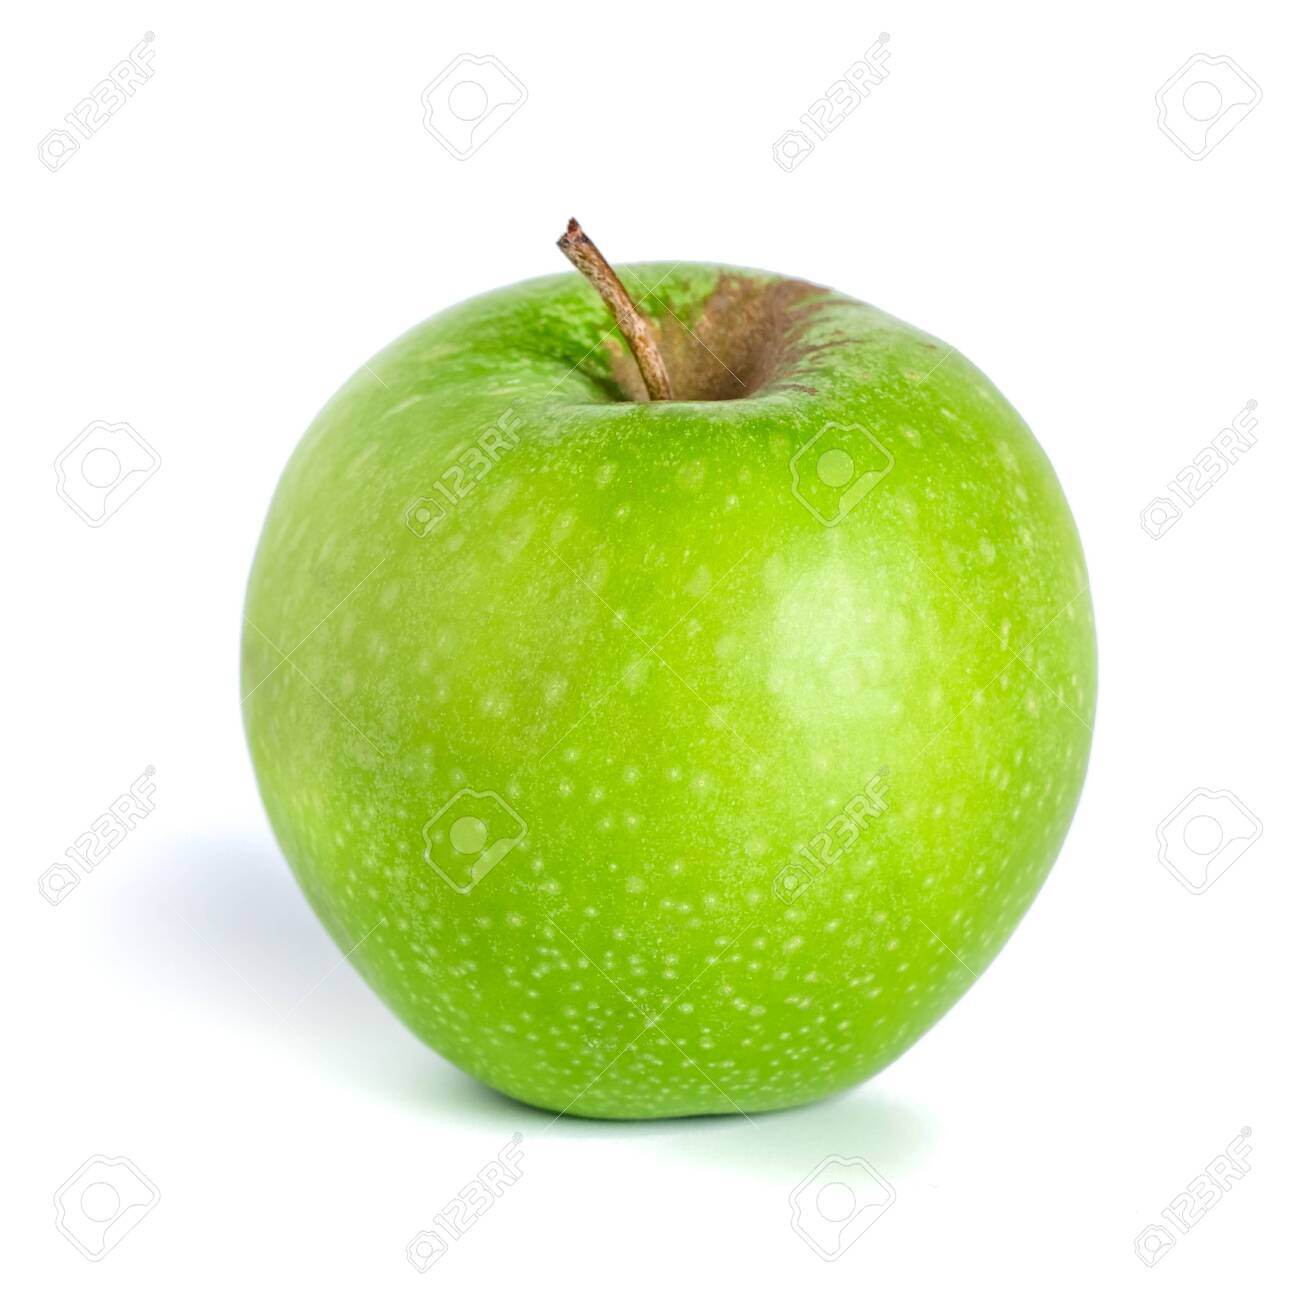 Green apple isolated on white background. Healthy food, fruit - 150117991